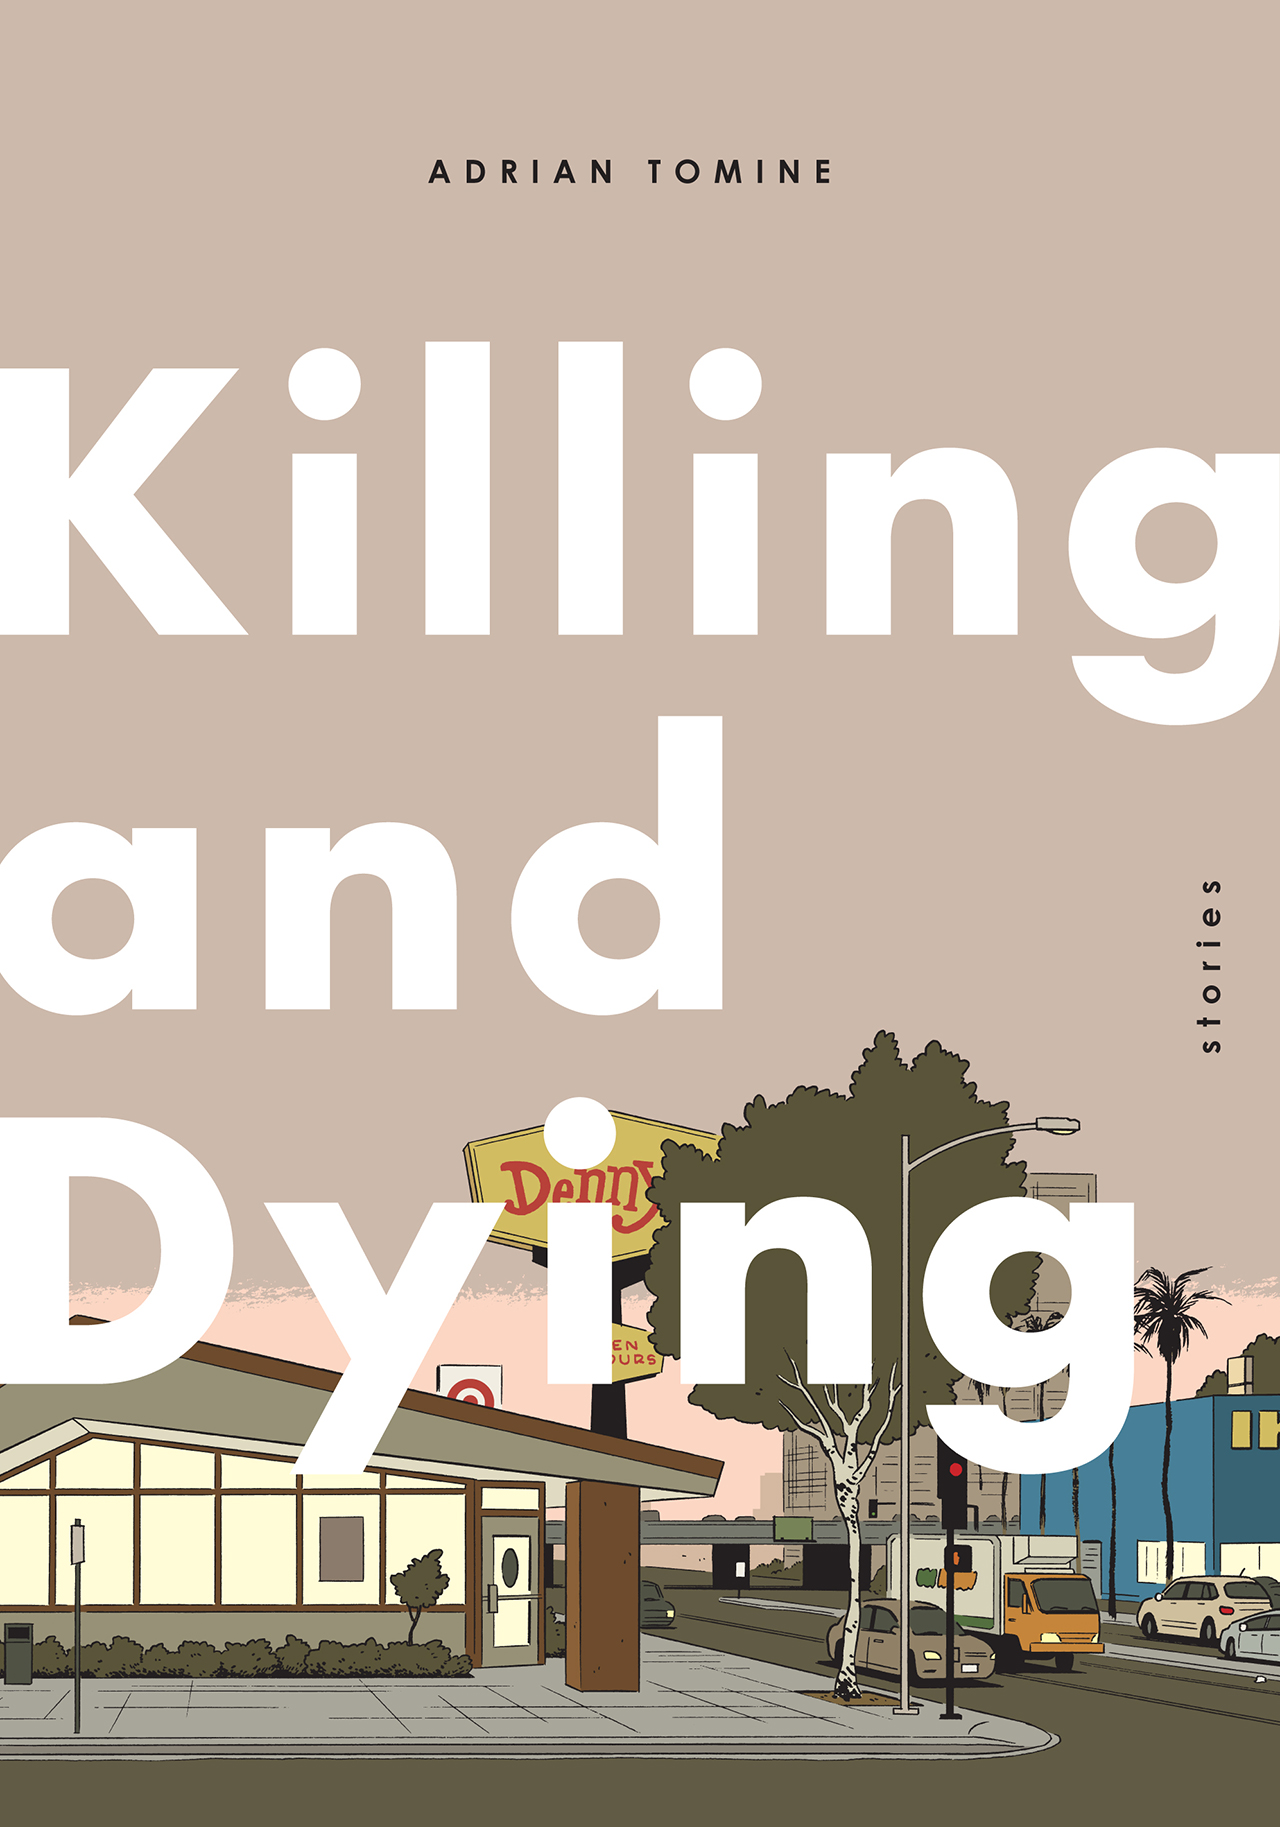 Cover of Adrian Tomine's 'Killing and Dying' (all images courtesy Drawn & Quarterly)